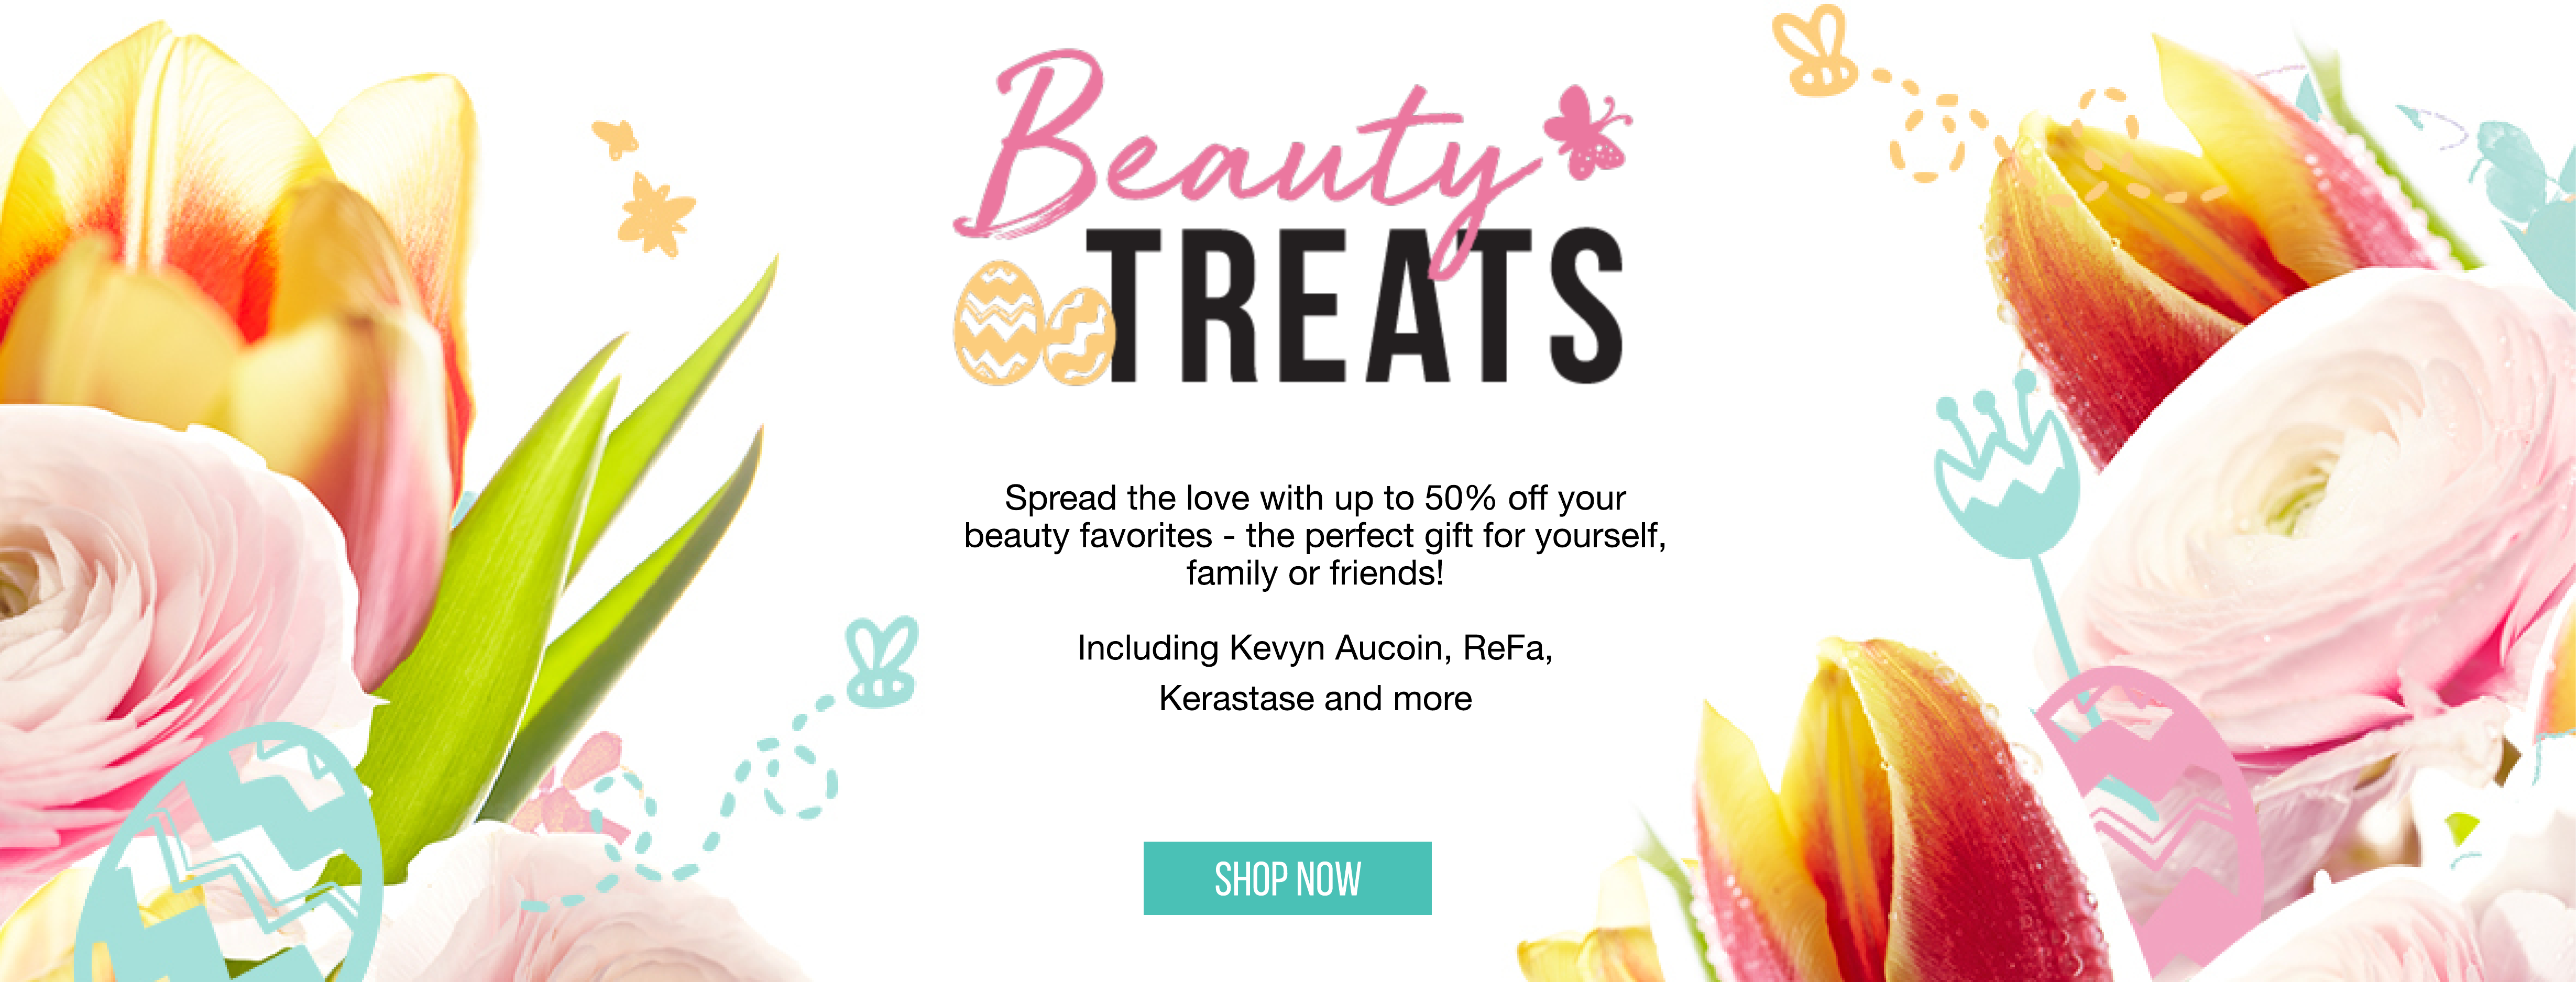 Beauty Treats | Spread the love with up to 50% off your beauty favorites - the perfect gift for yourself, family or friends!